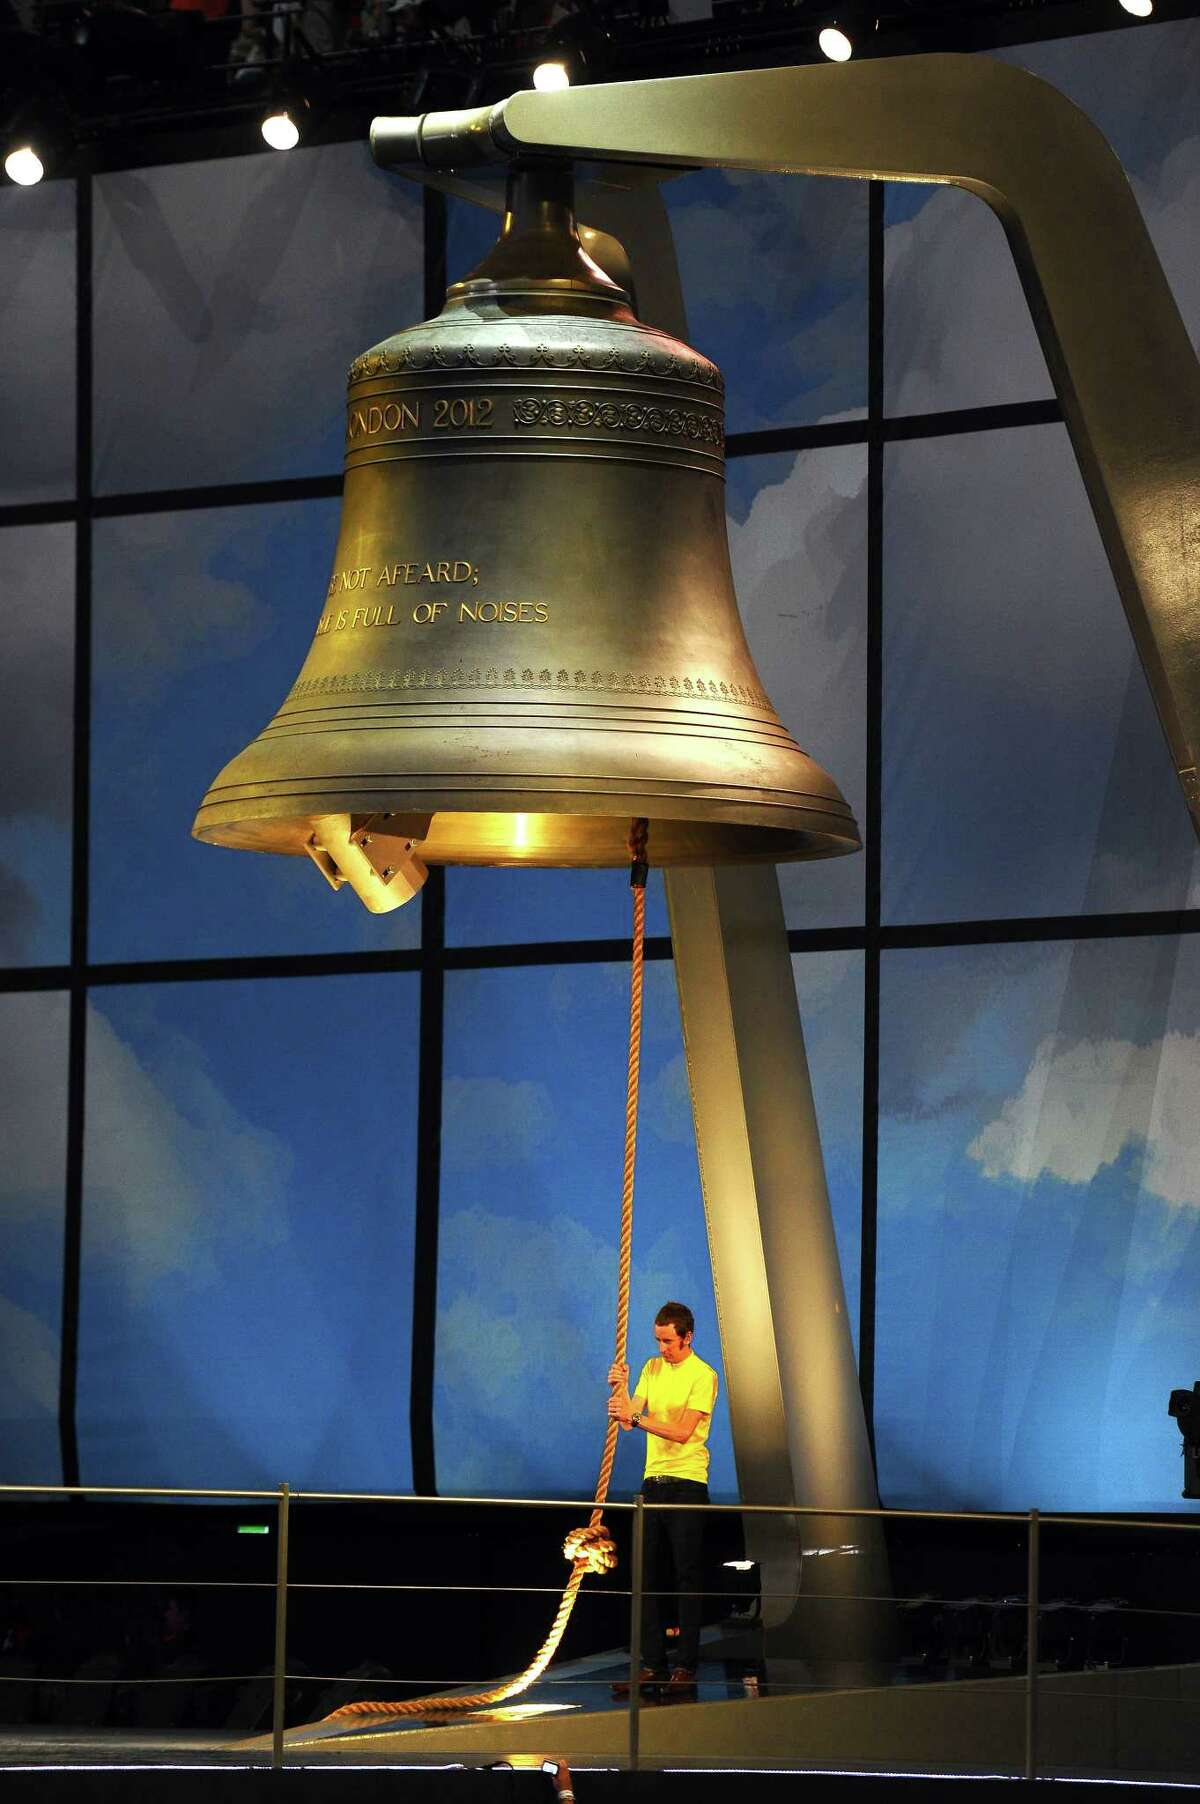 Bradley Wiggins the first British winner of the Tour De France cycle race rings the largest harmonically tuned bell in the world to signal the start of the Opening Ceremony of the London 2012 Olympic Games at the Olympic Stadium on July 27, 2012 in London, England.